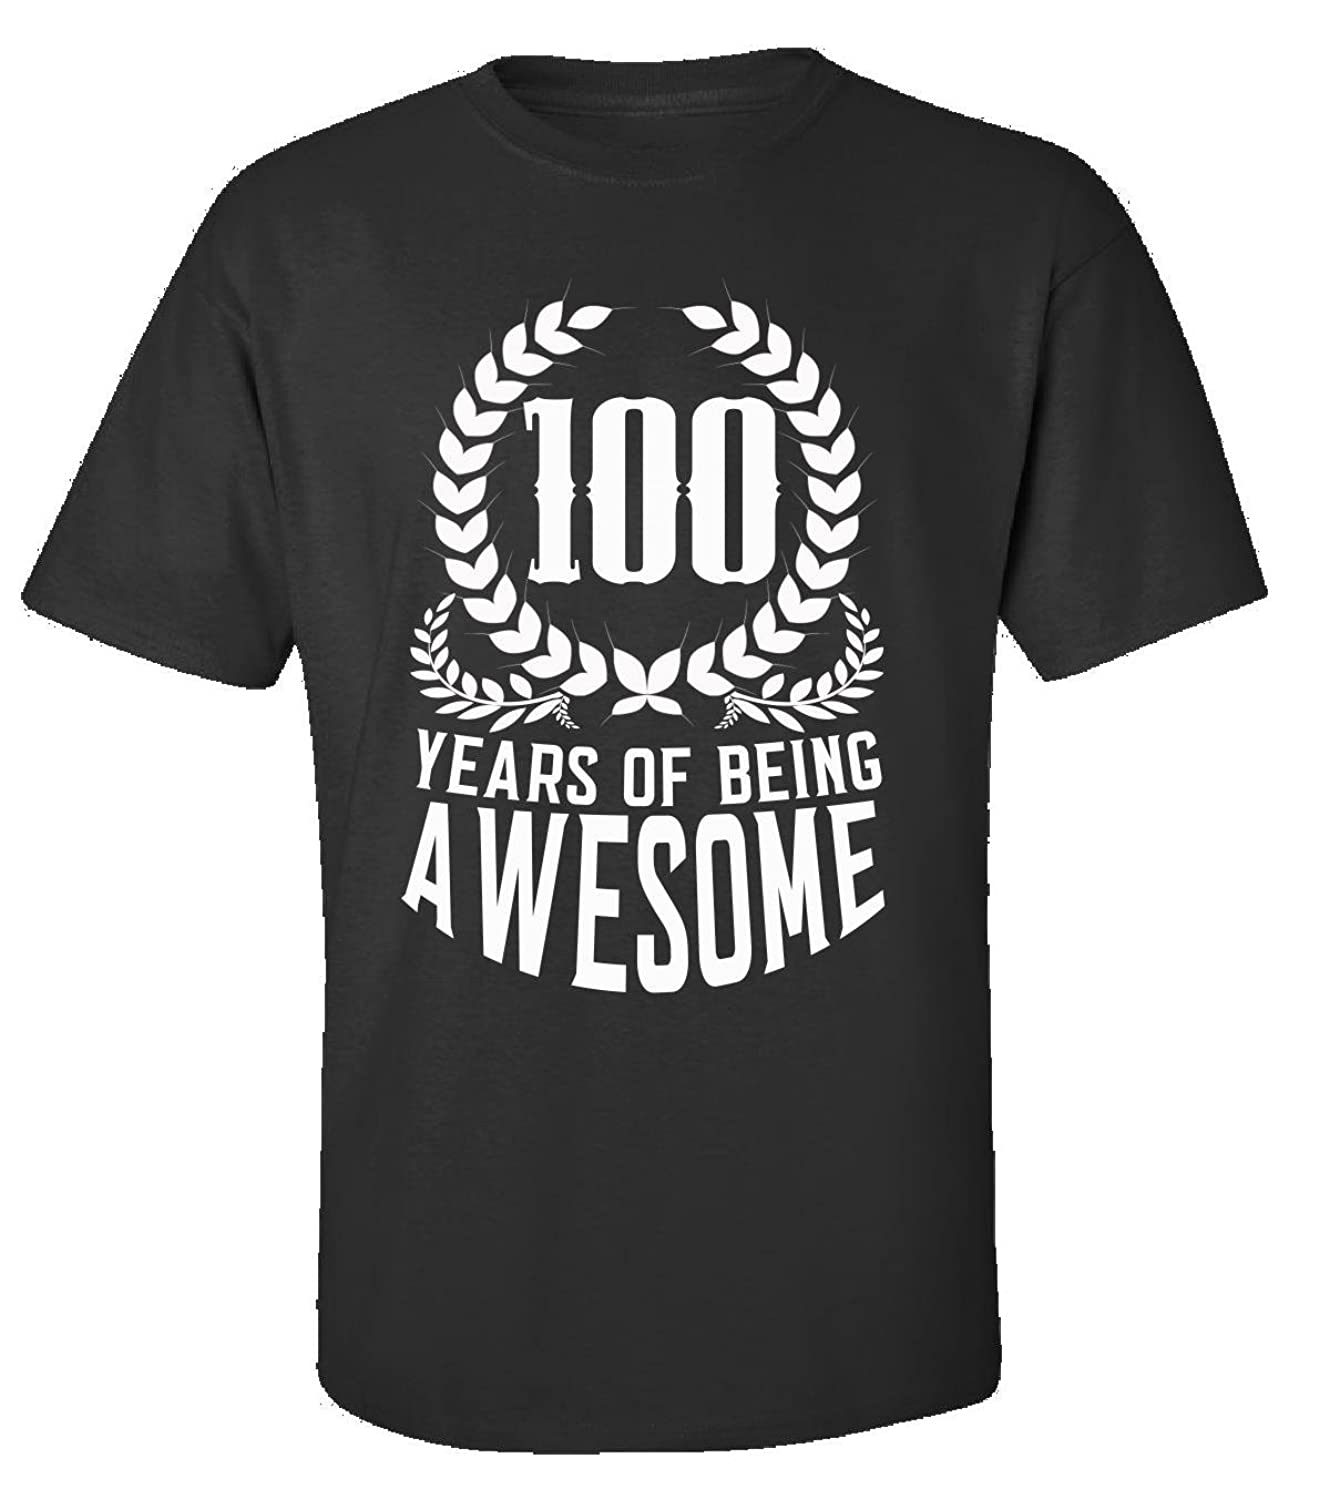 100th Birthday Gift For Men Woman 100 Years Of Being Awesome - Adult Shirt